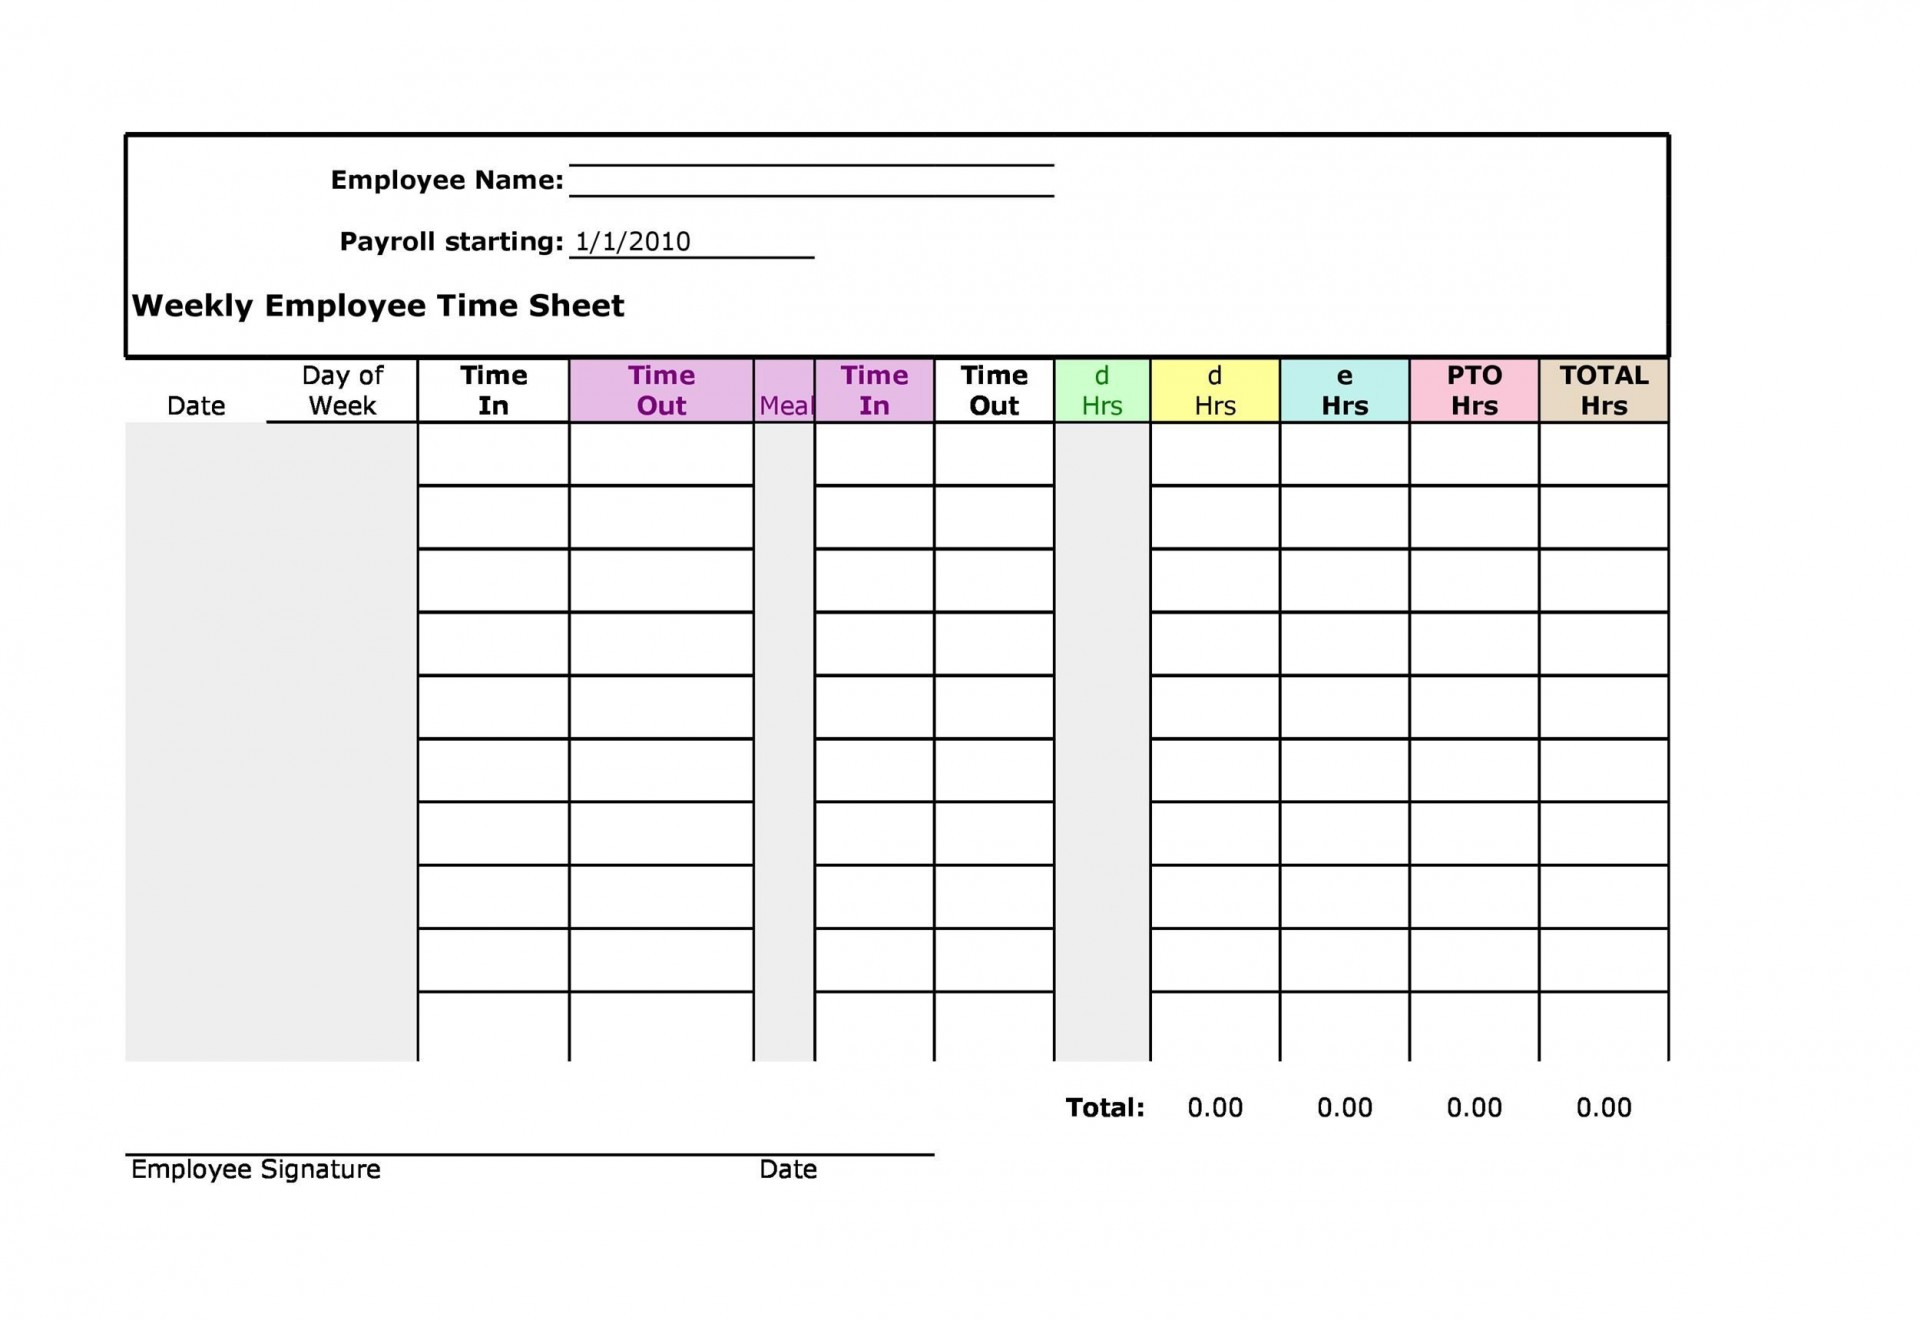 009 Rare Employee Time Card Form Highest Clarity  Timesheet Template Excel Sheet Free1920